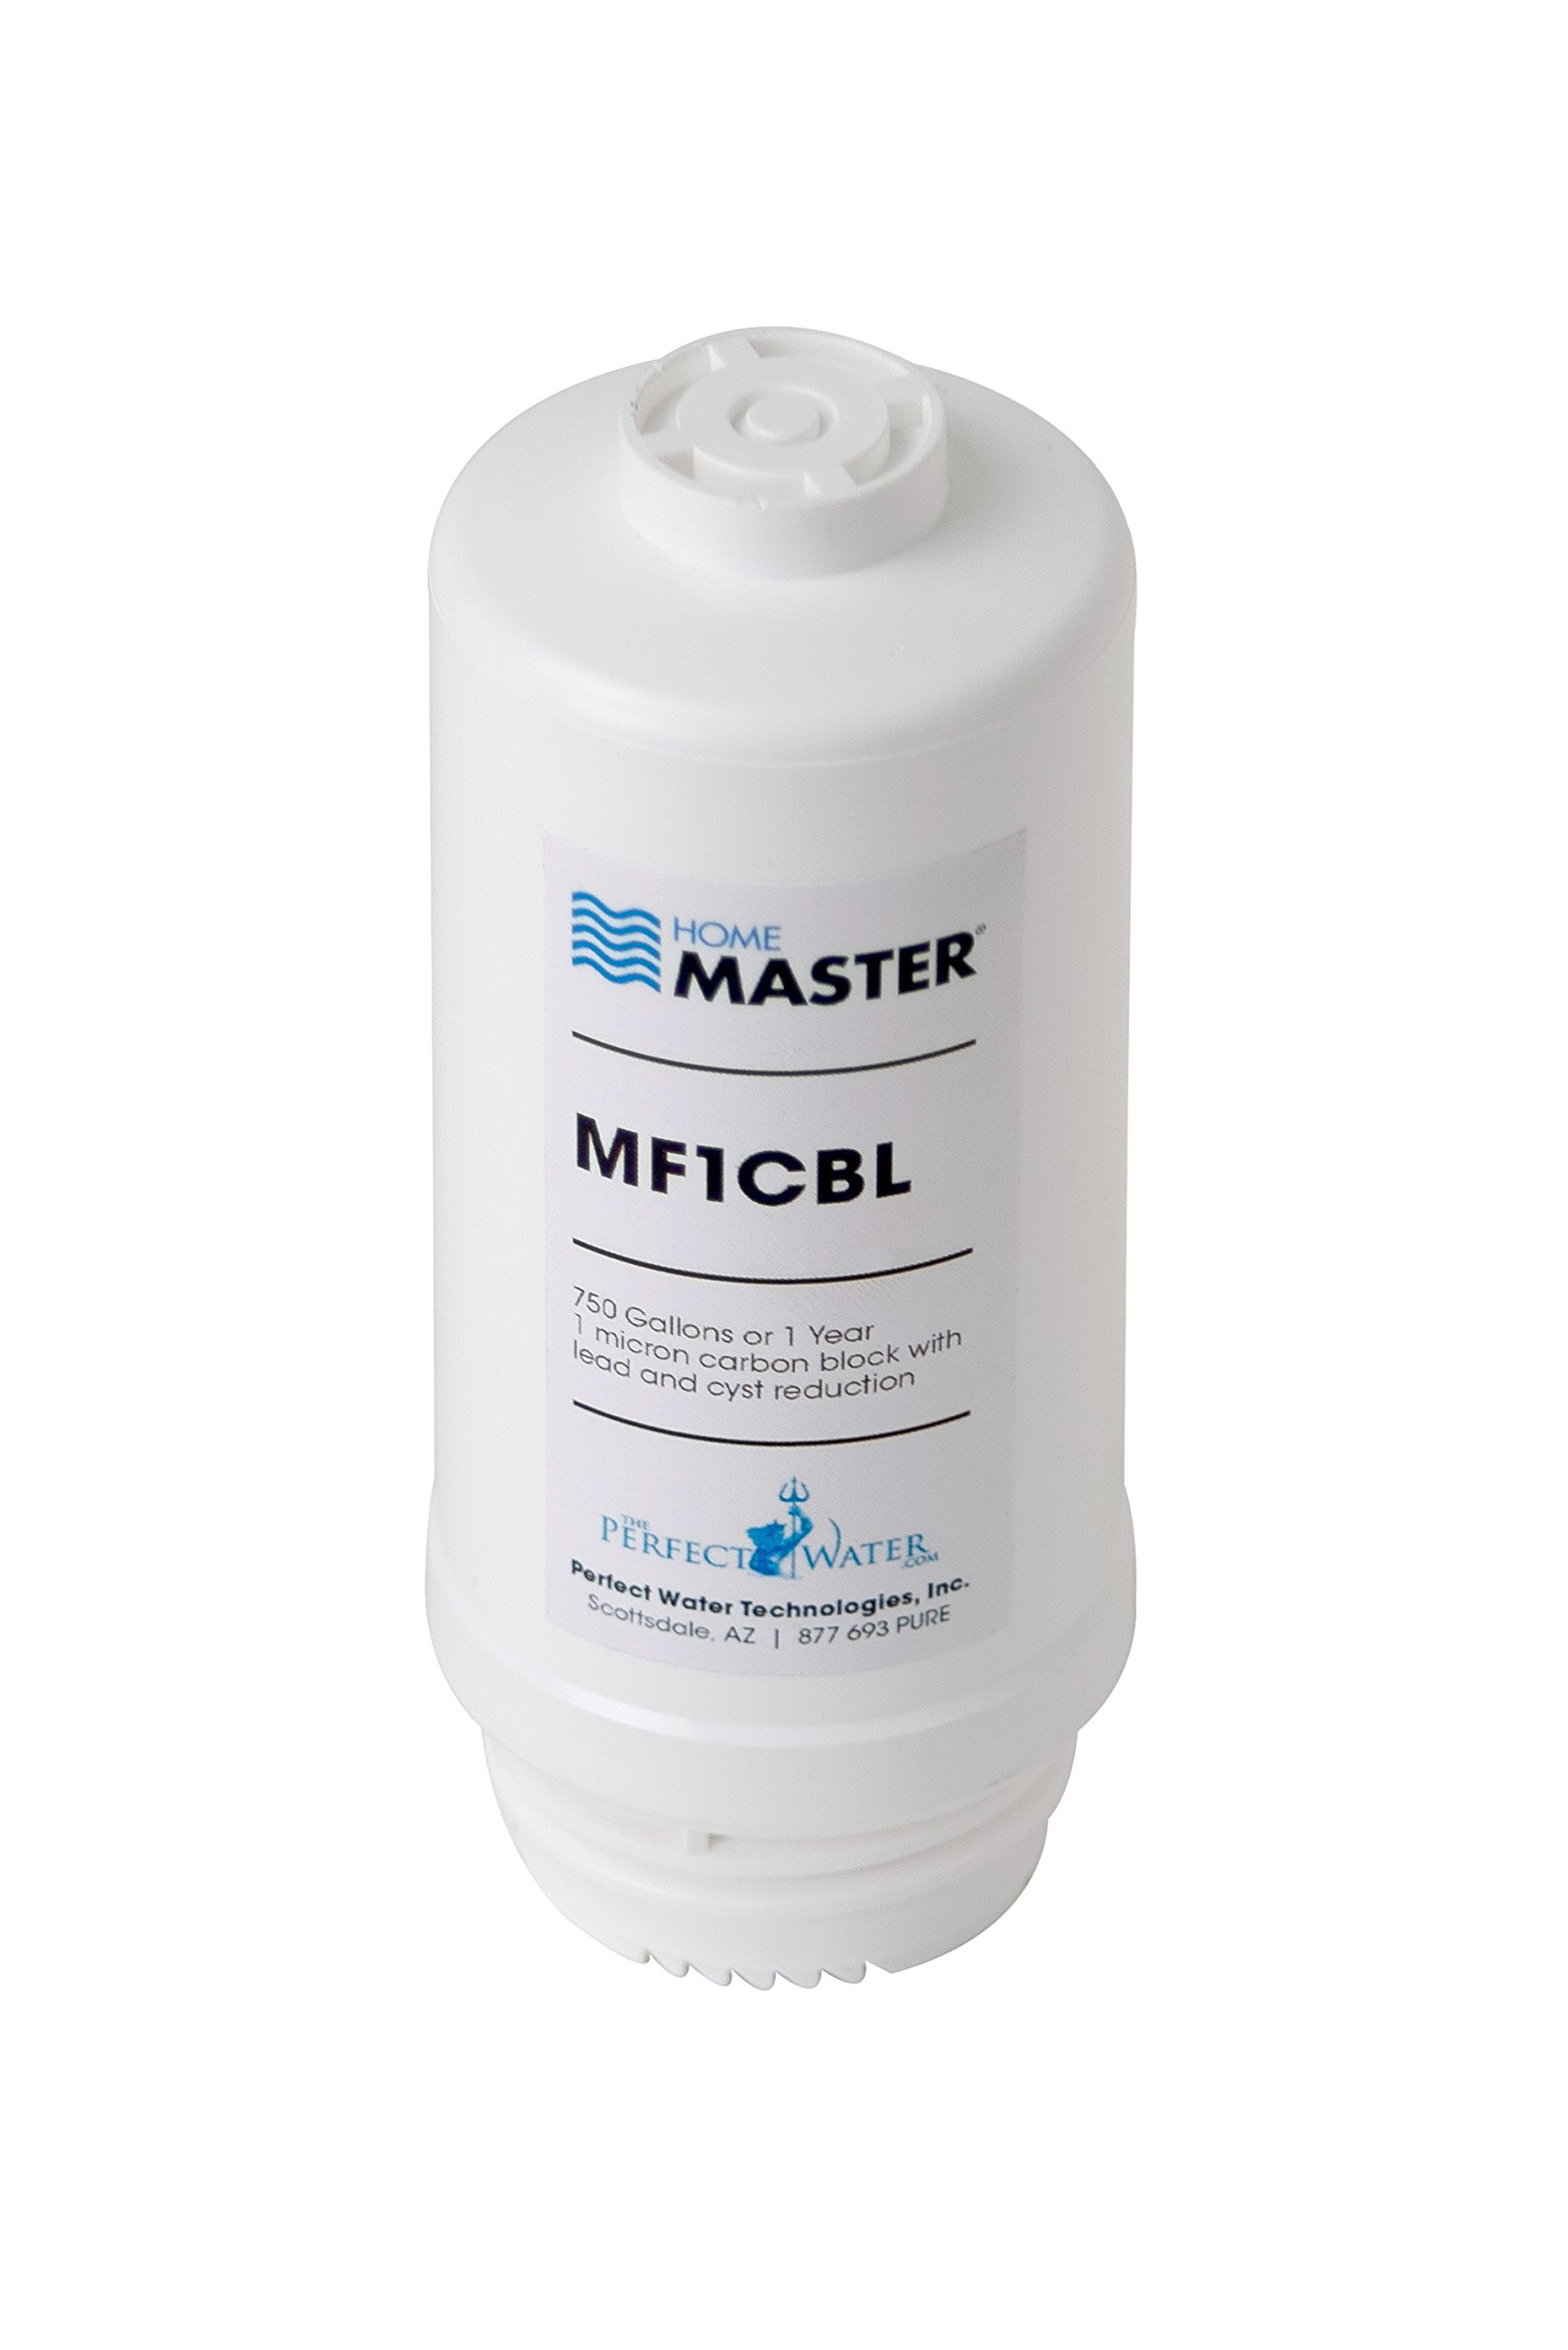 Home Master MF1CBL Mini Plus Replacement Filter, White